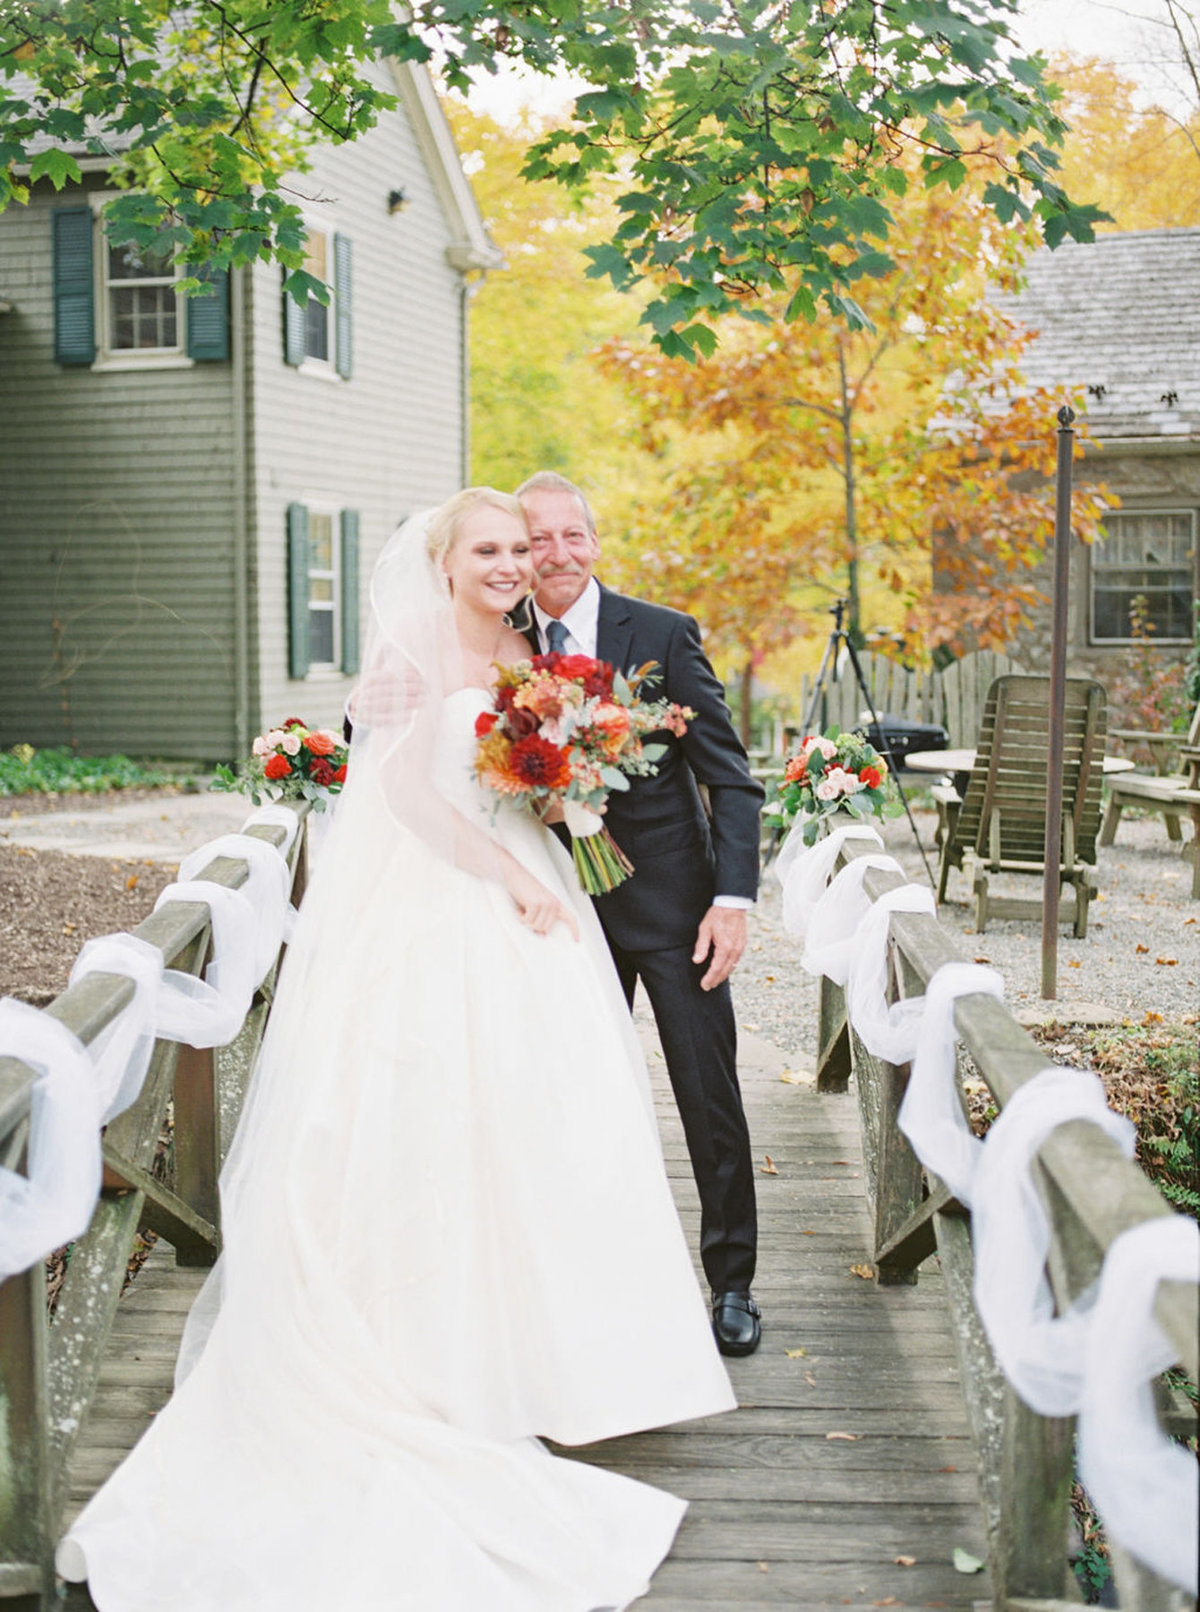 Michelle-Behre-Photography-Mary-and-Ken-Inn-at-the-Millrace-Pond-Hope-NJ-216